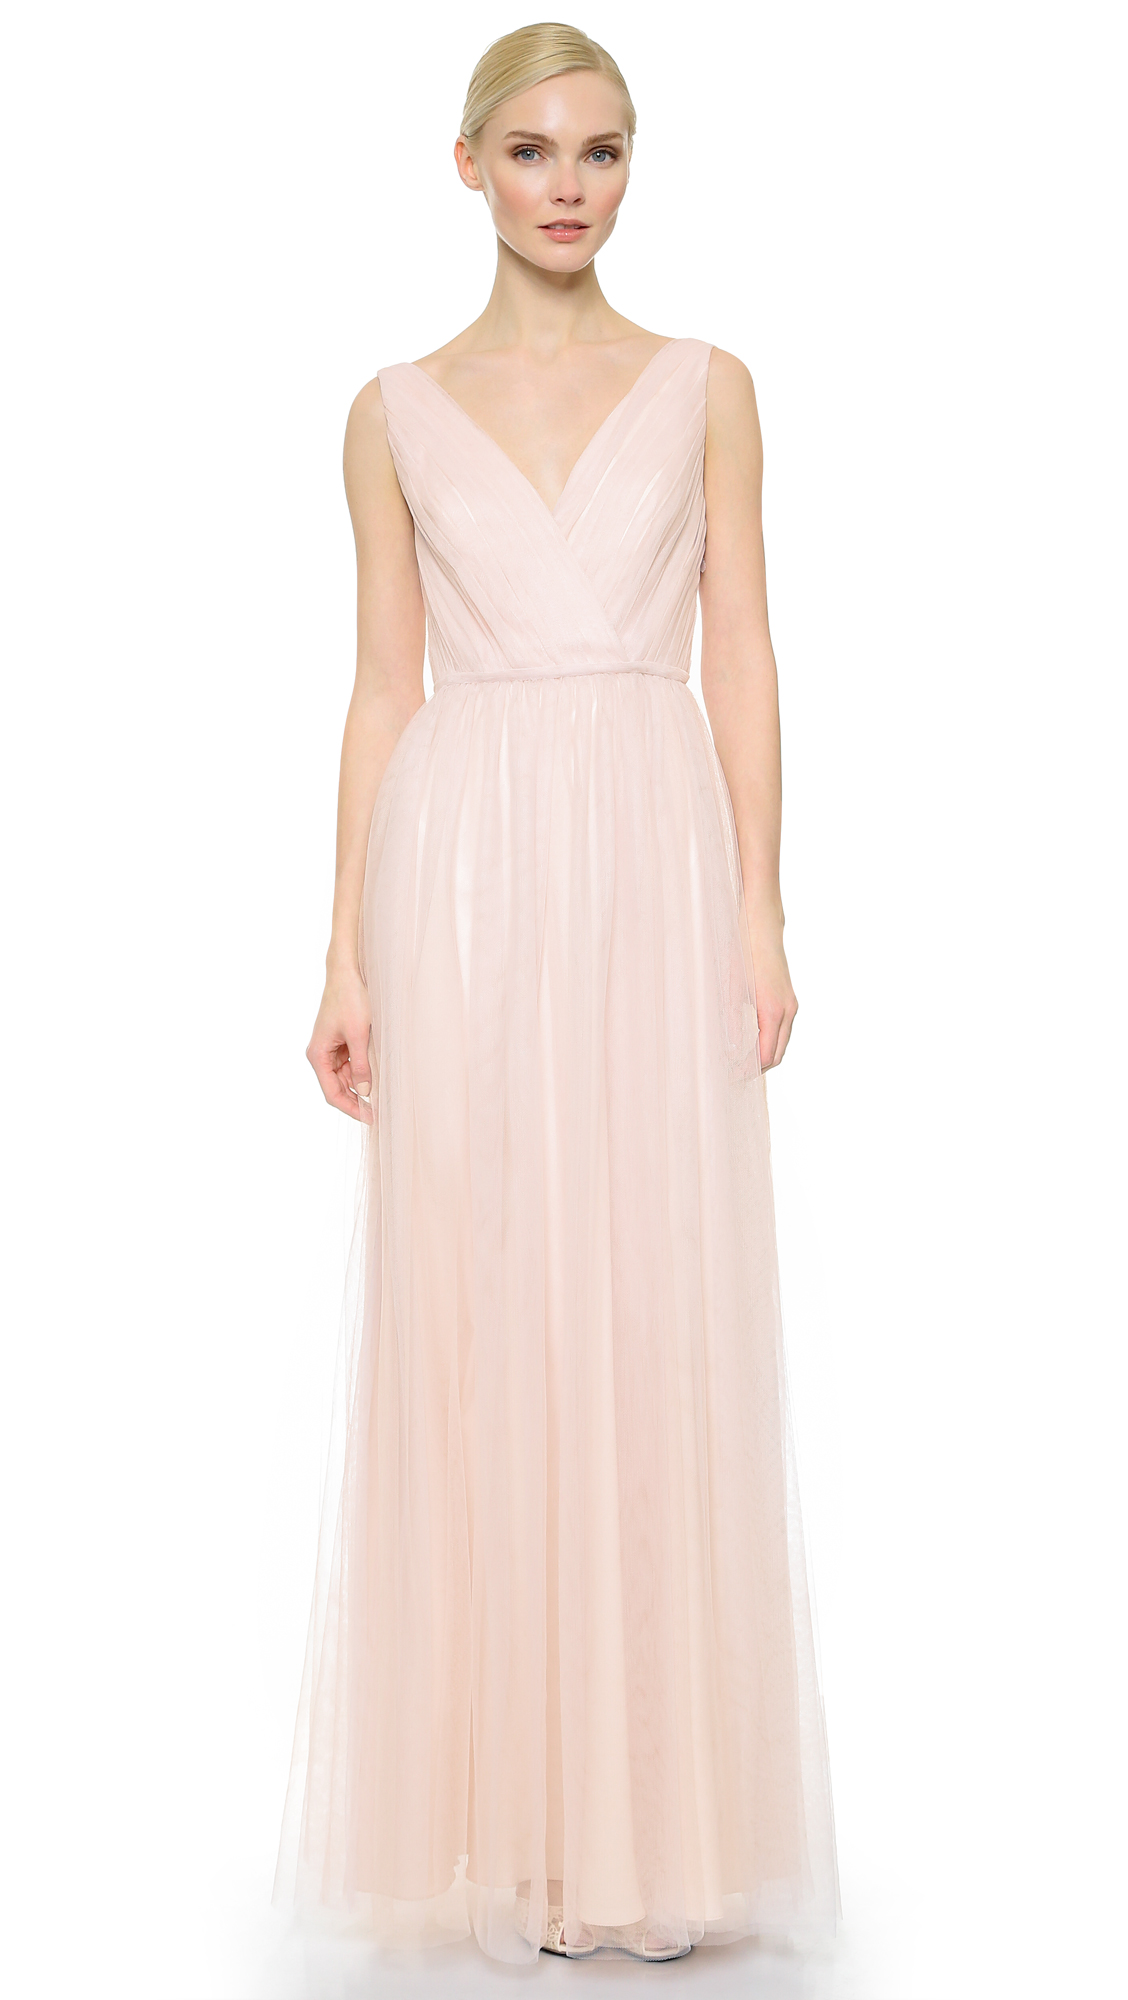 Monique Lhuillier Bridesmaids Shirred Multi Tone V Neck Gown - Blush/Lavender